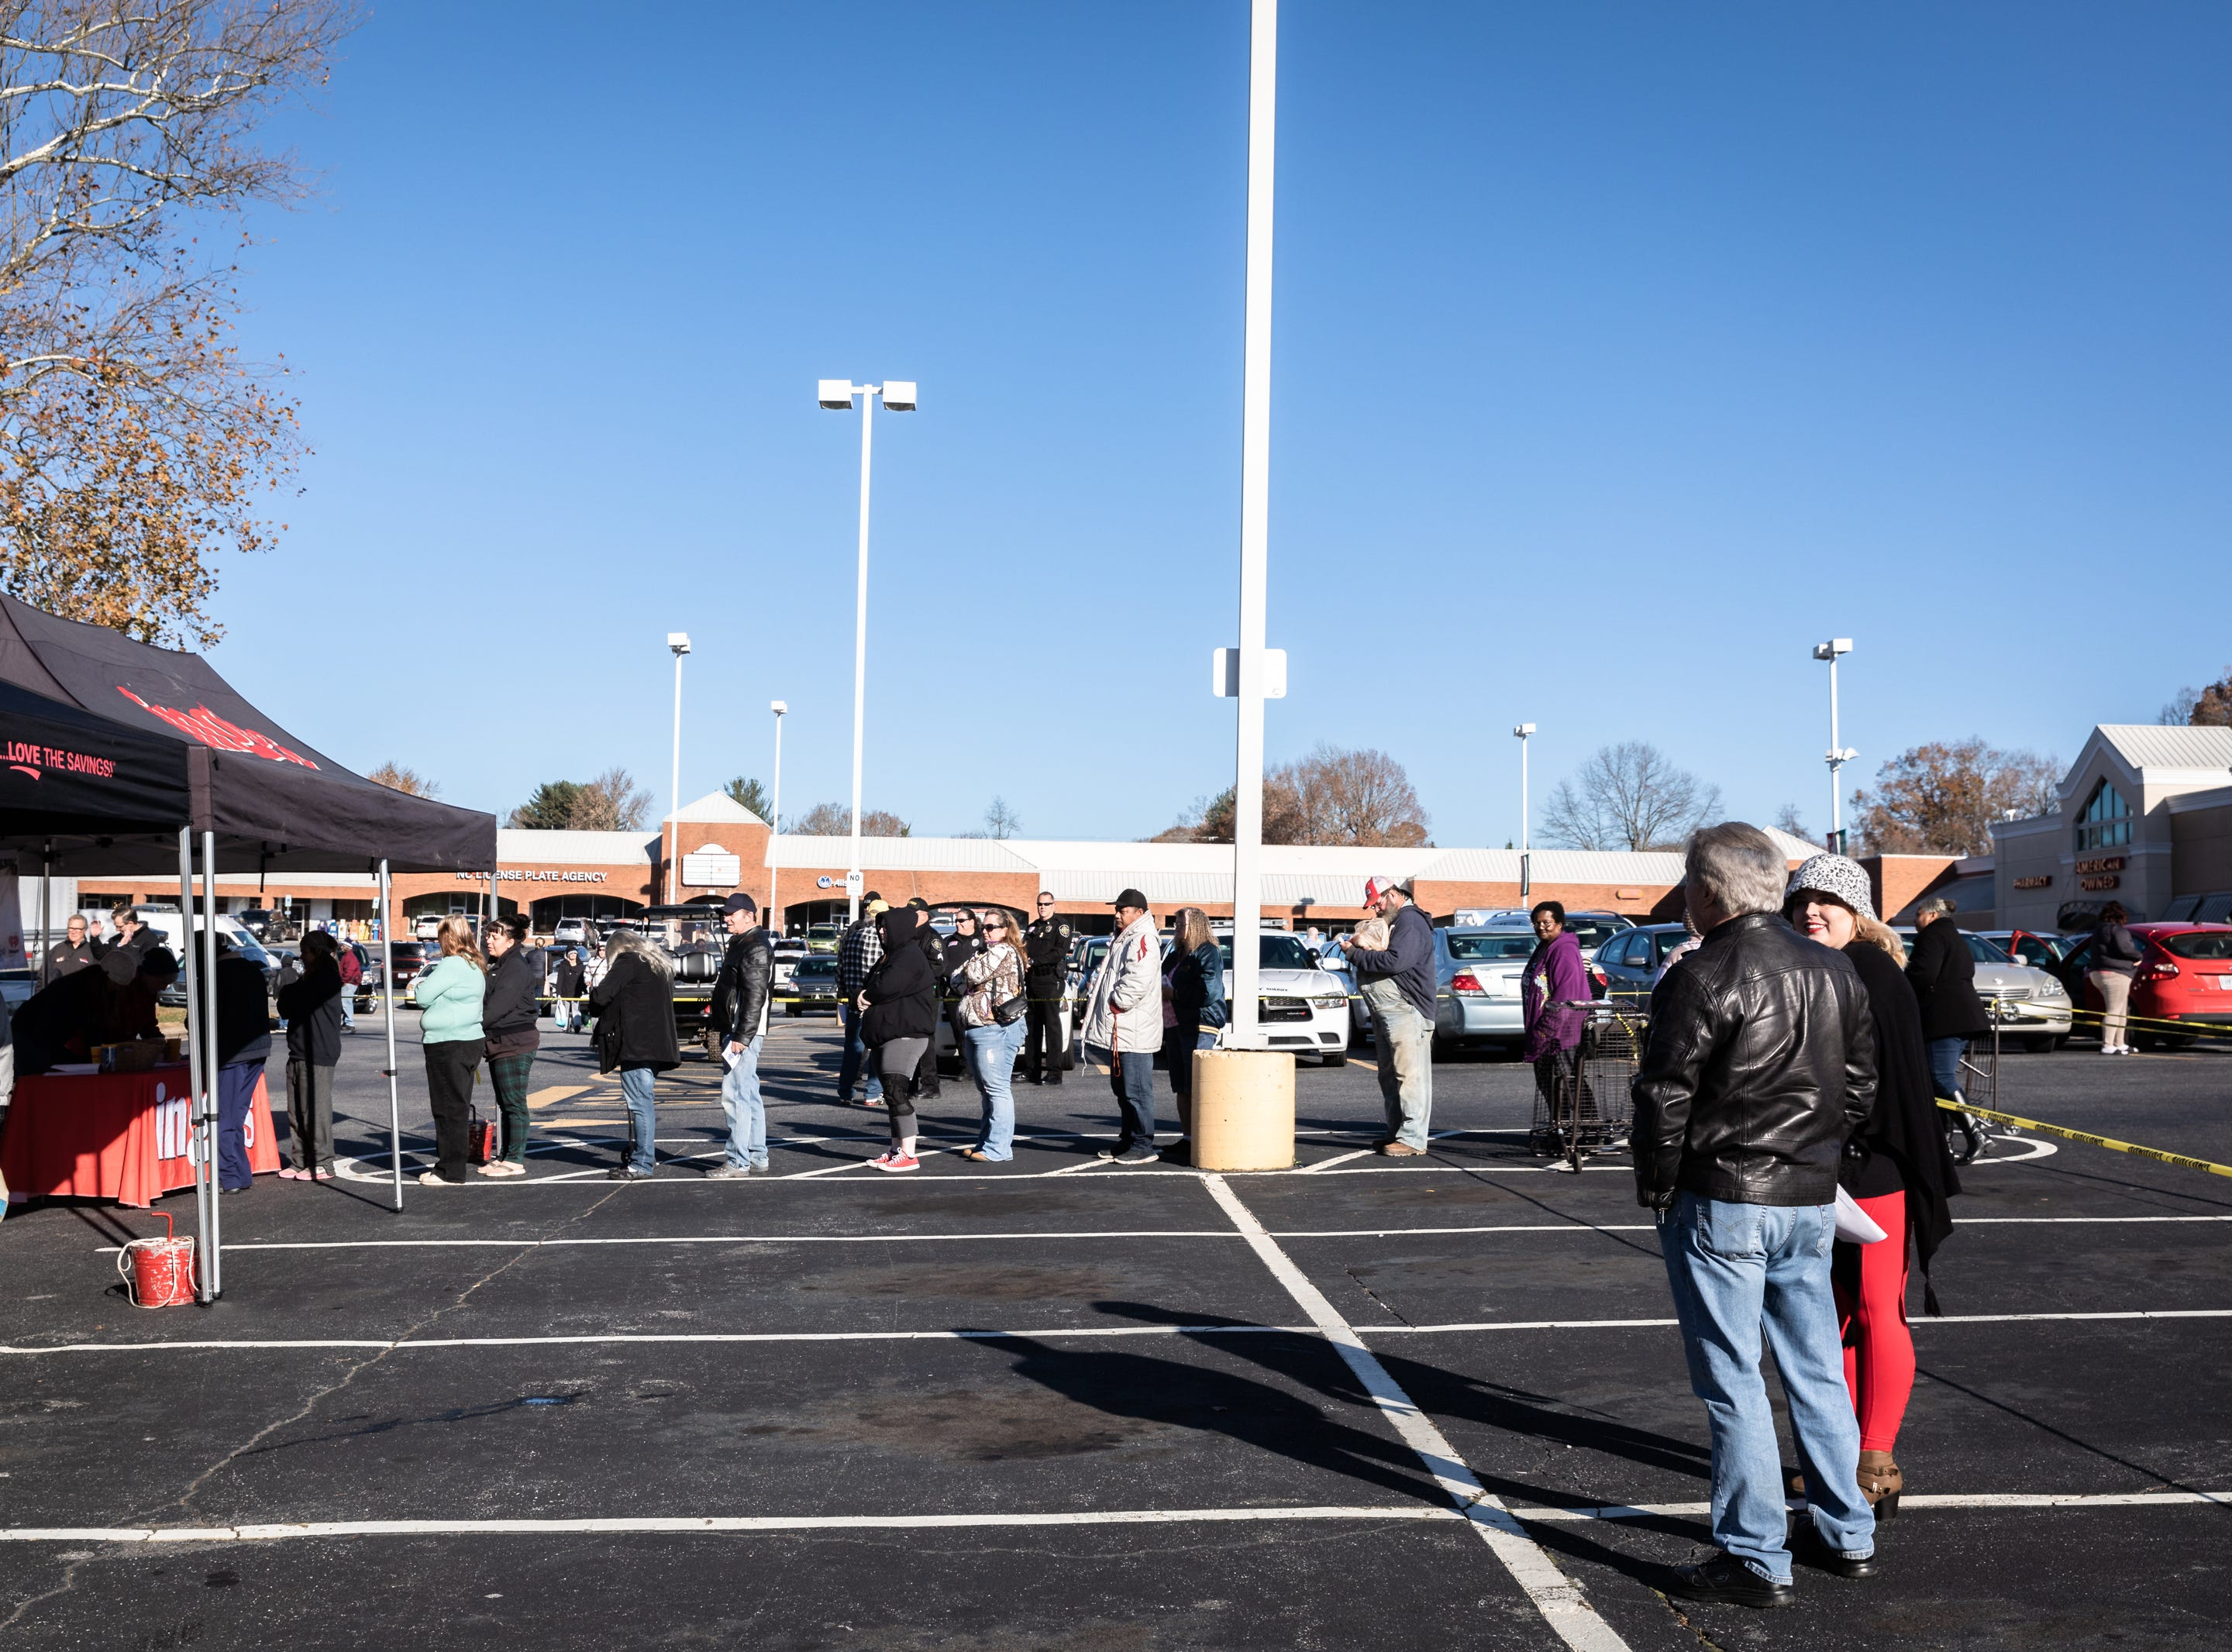 Clients of Eblen Charities line up to receive Thanksgiving meals at Ingles in the South Forest Shopping Center, during their annual turkey giveaway Nov. 21, 2018. More than 13,000 meals were provided to nearly 1,300 families this year.